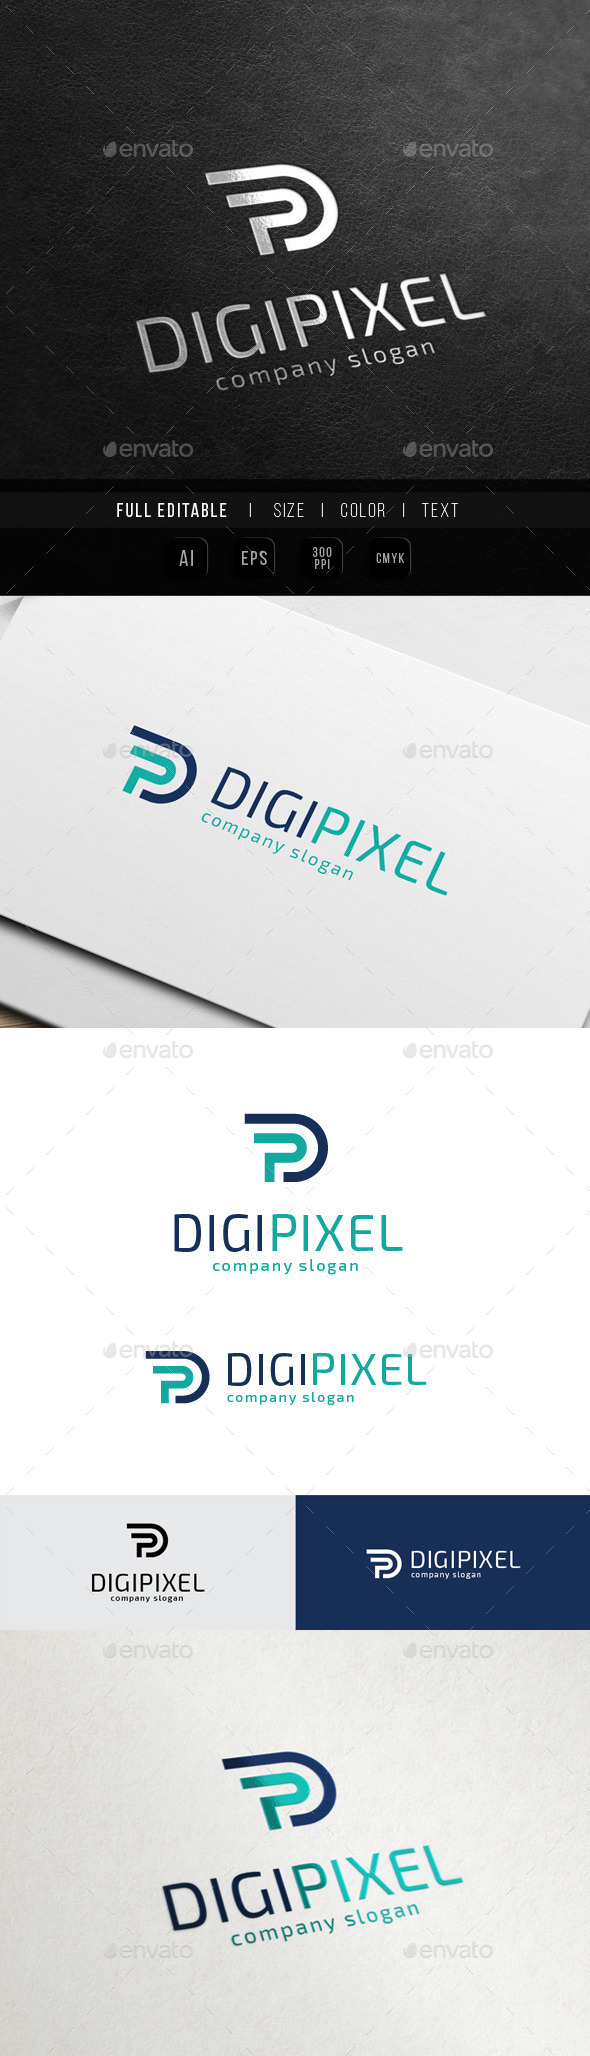 GraphicRiver Digital Production Letter P PD 10641608